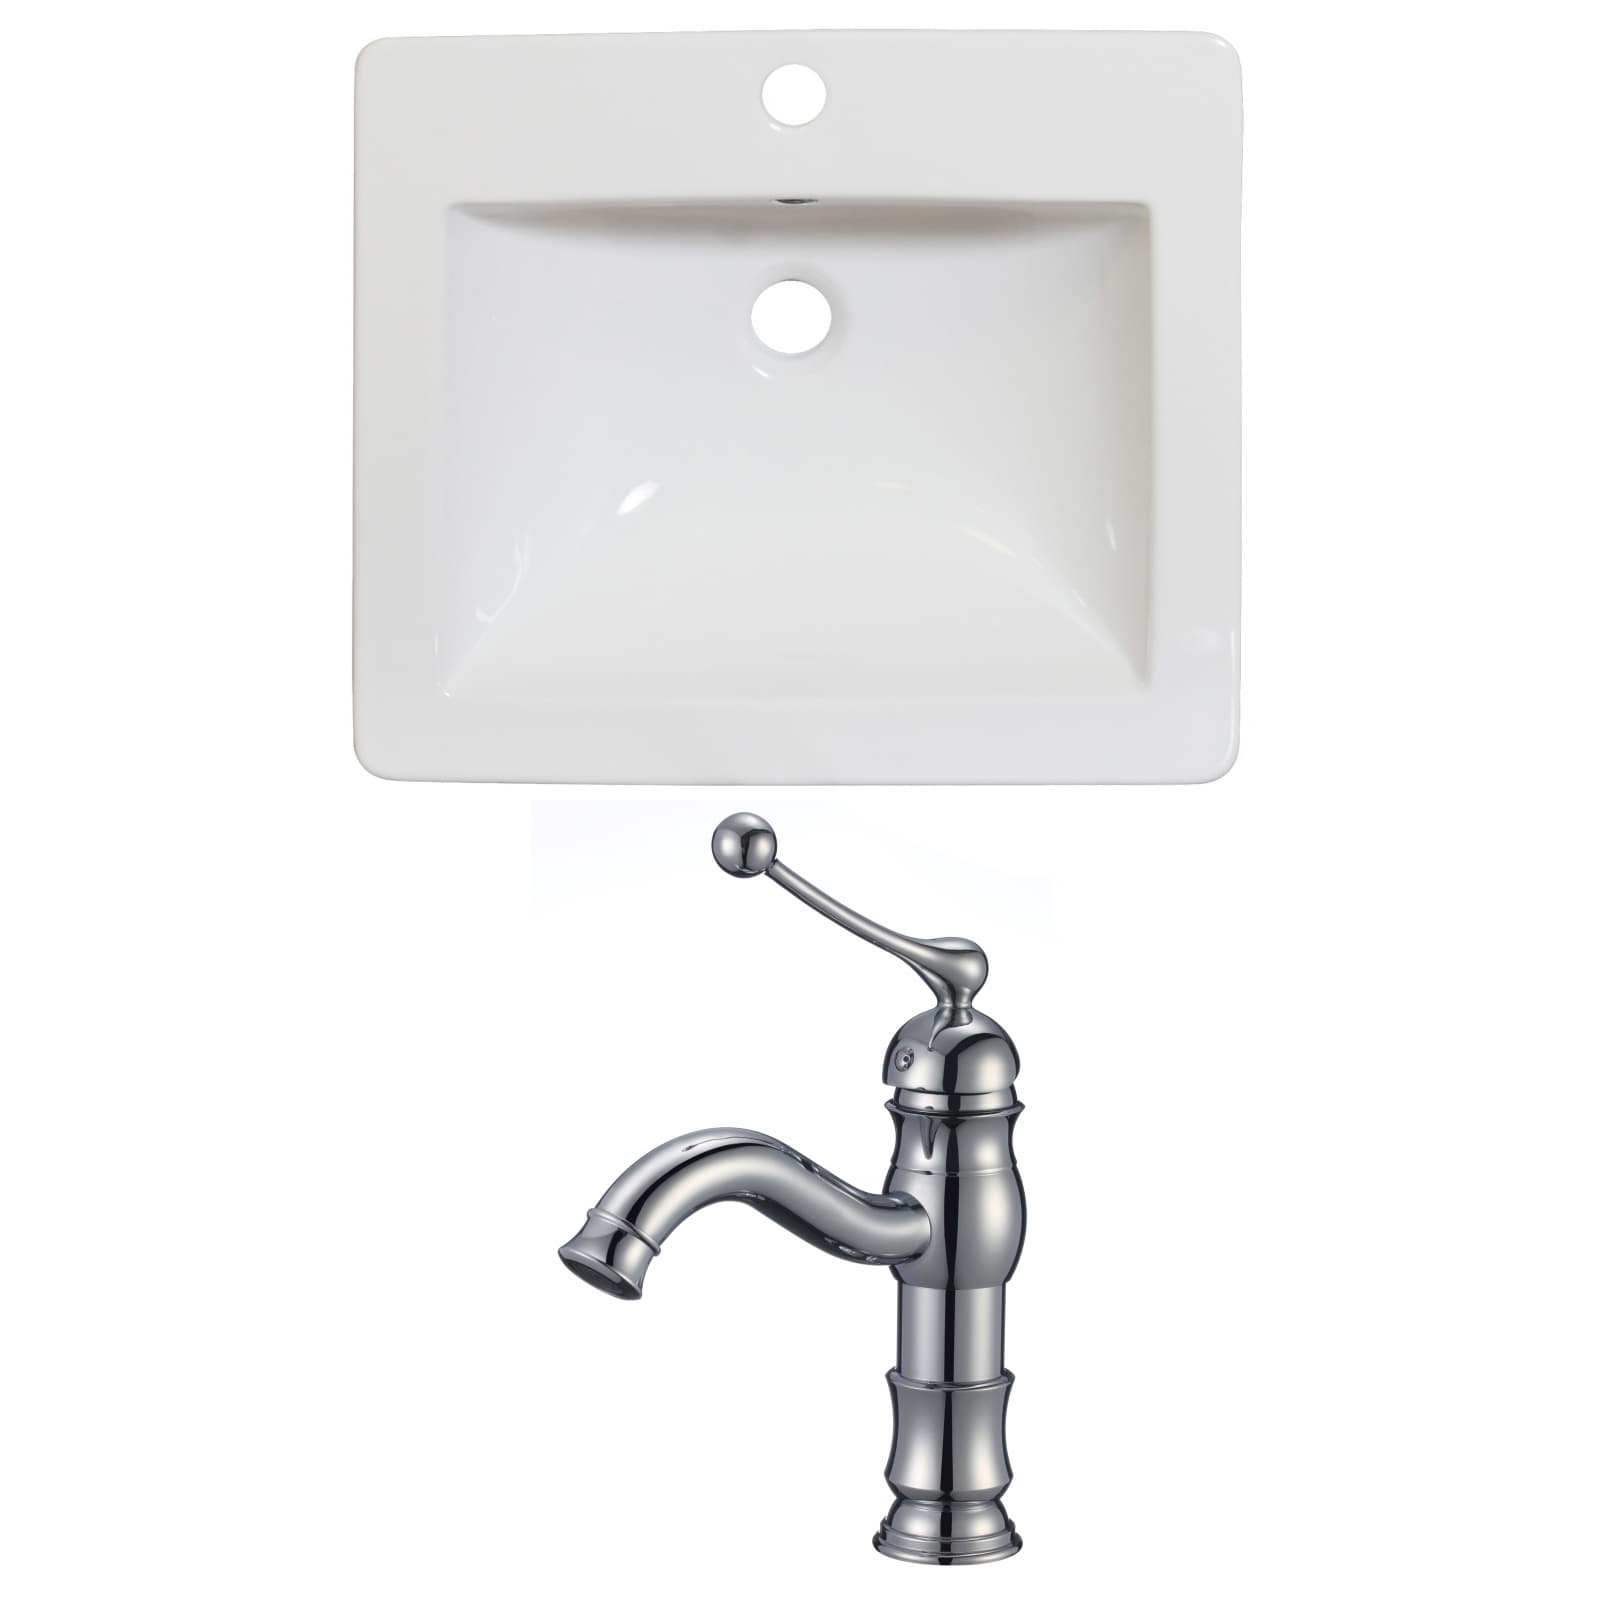 American Imaginations 21-in. W x 18-in. D Ceramic Top Set In White Color With Single Hole CUPC Faucet